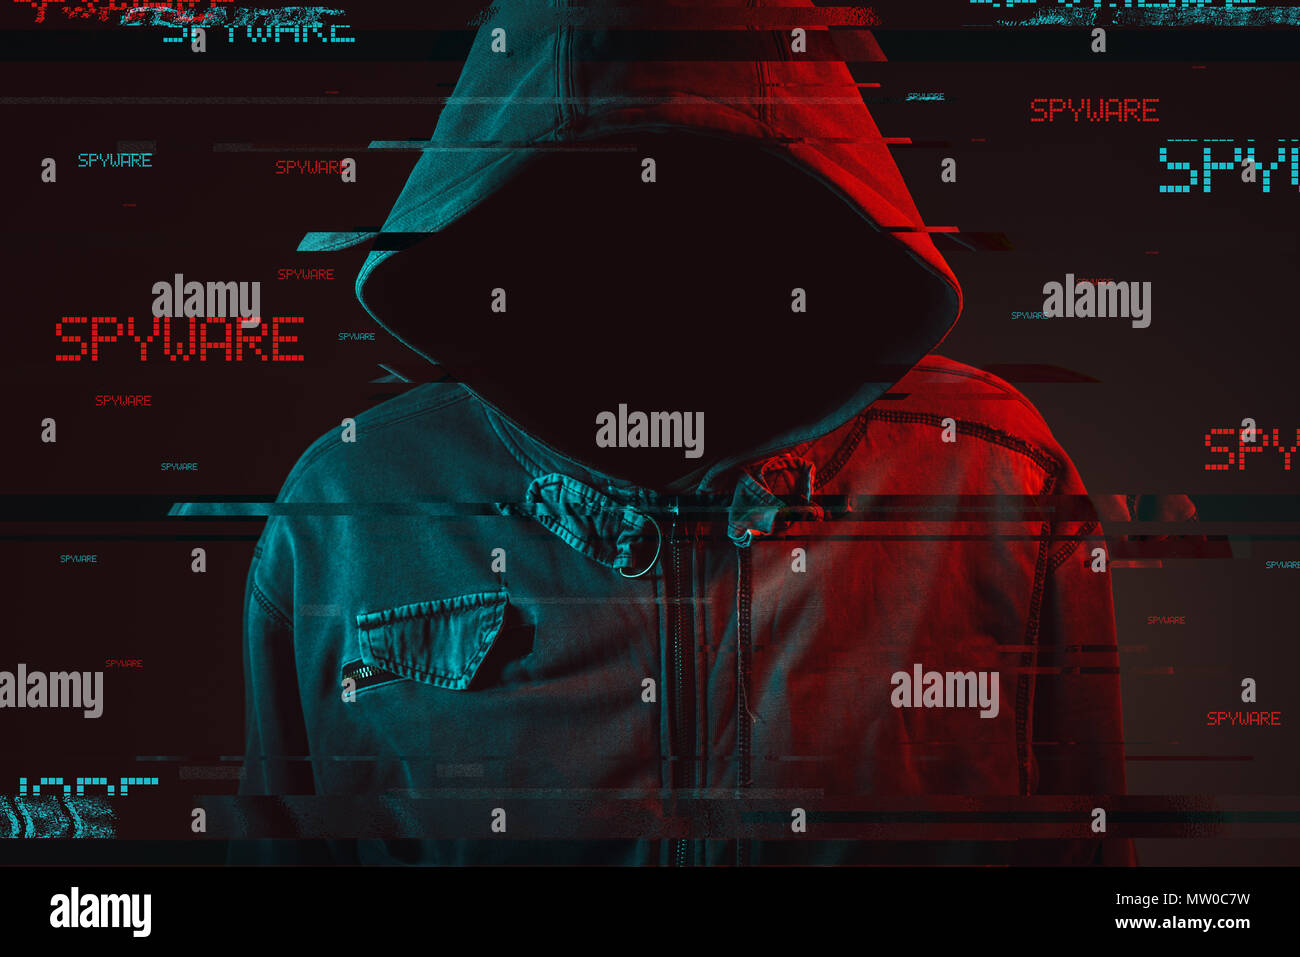 Spyware concept with faceless hooded male person, low key red and blue lit image and digital glitch effect - Stock Image